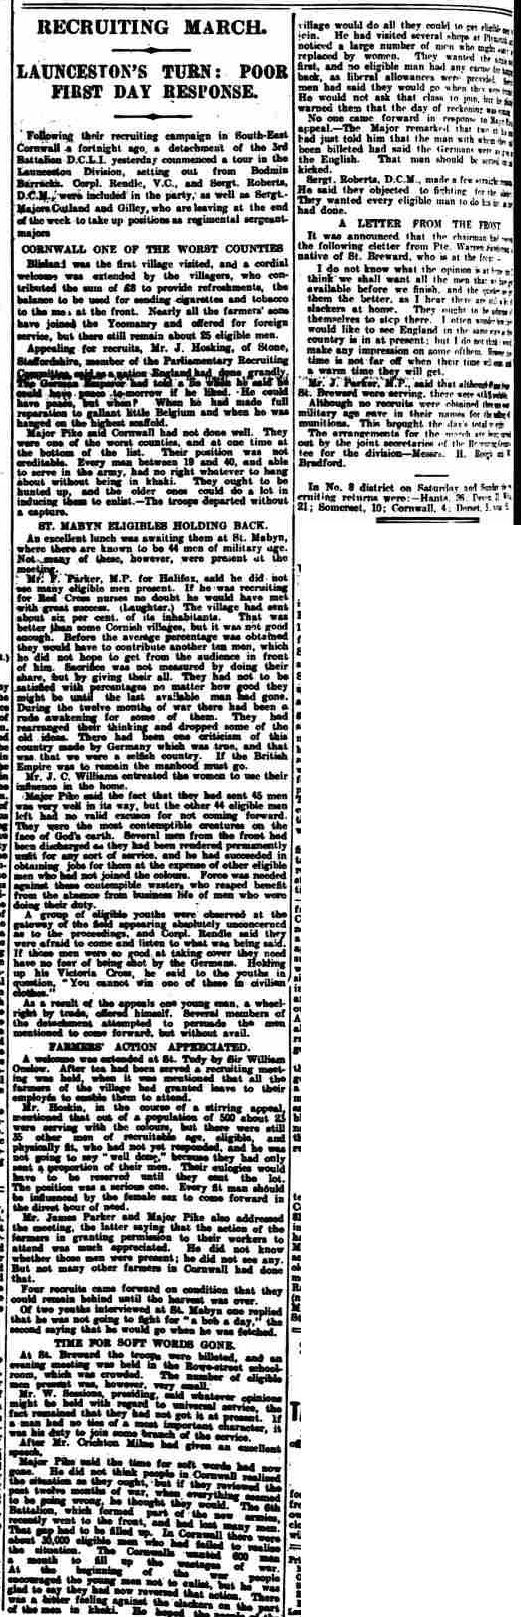 Western Morning News - Tuesday 10 August 1915